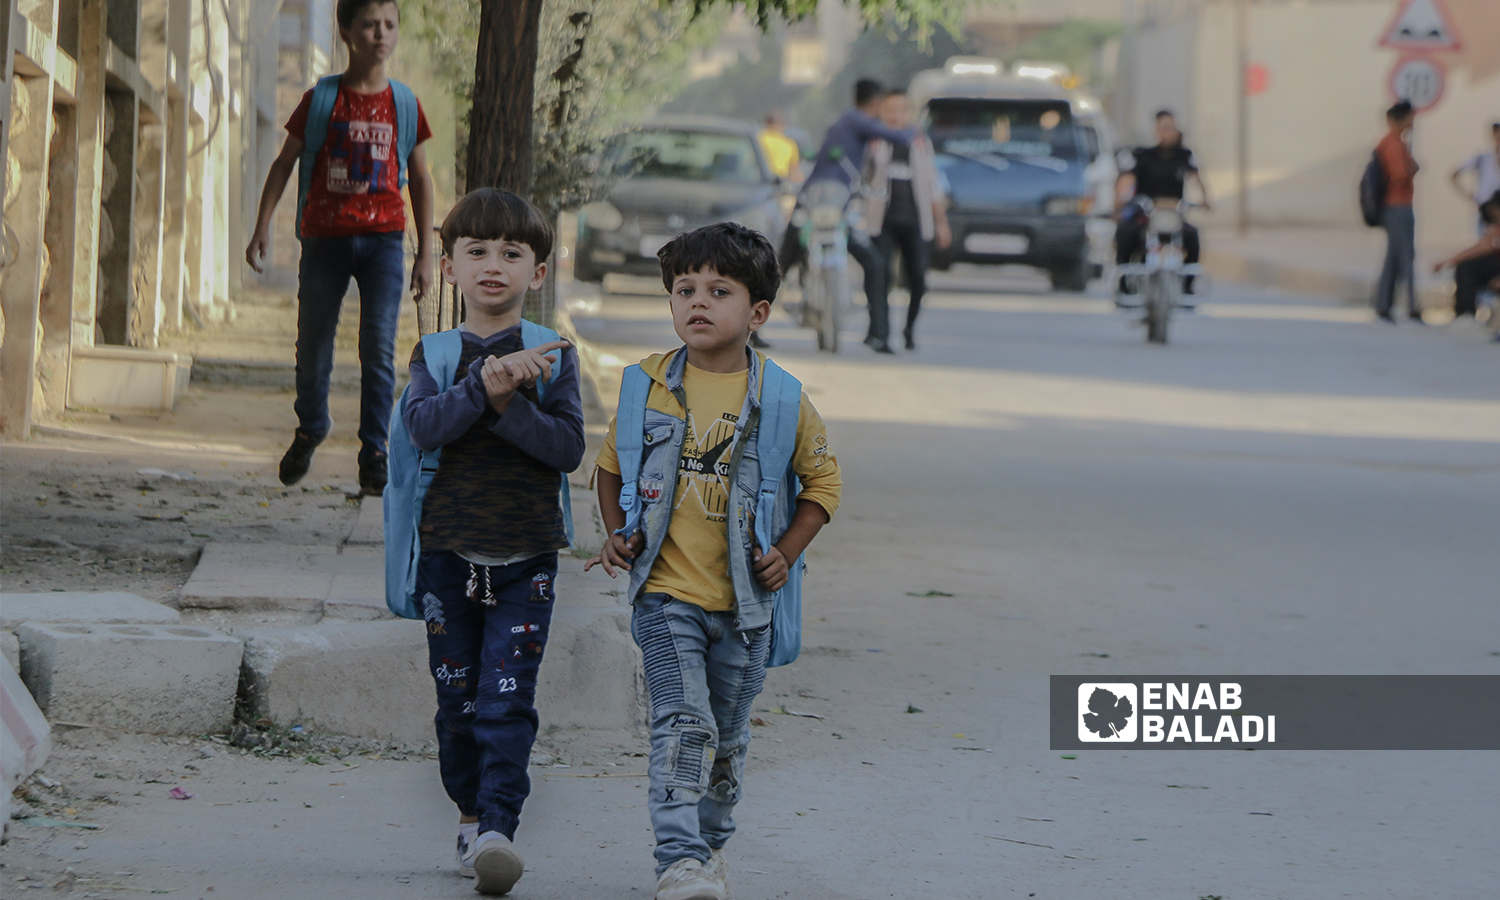 Two primary school students go to school in the morning at the beginning of the new school year in the northern countryside of Aleppo - Azaz city - 22 September 2021 (Enab Baladi / Walid Othman)